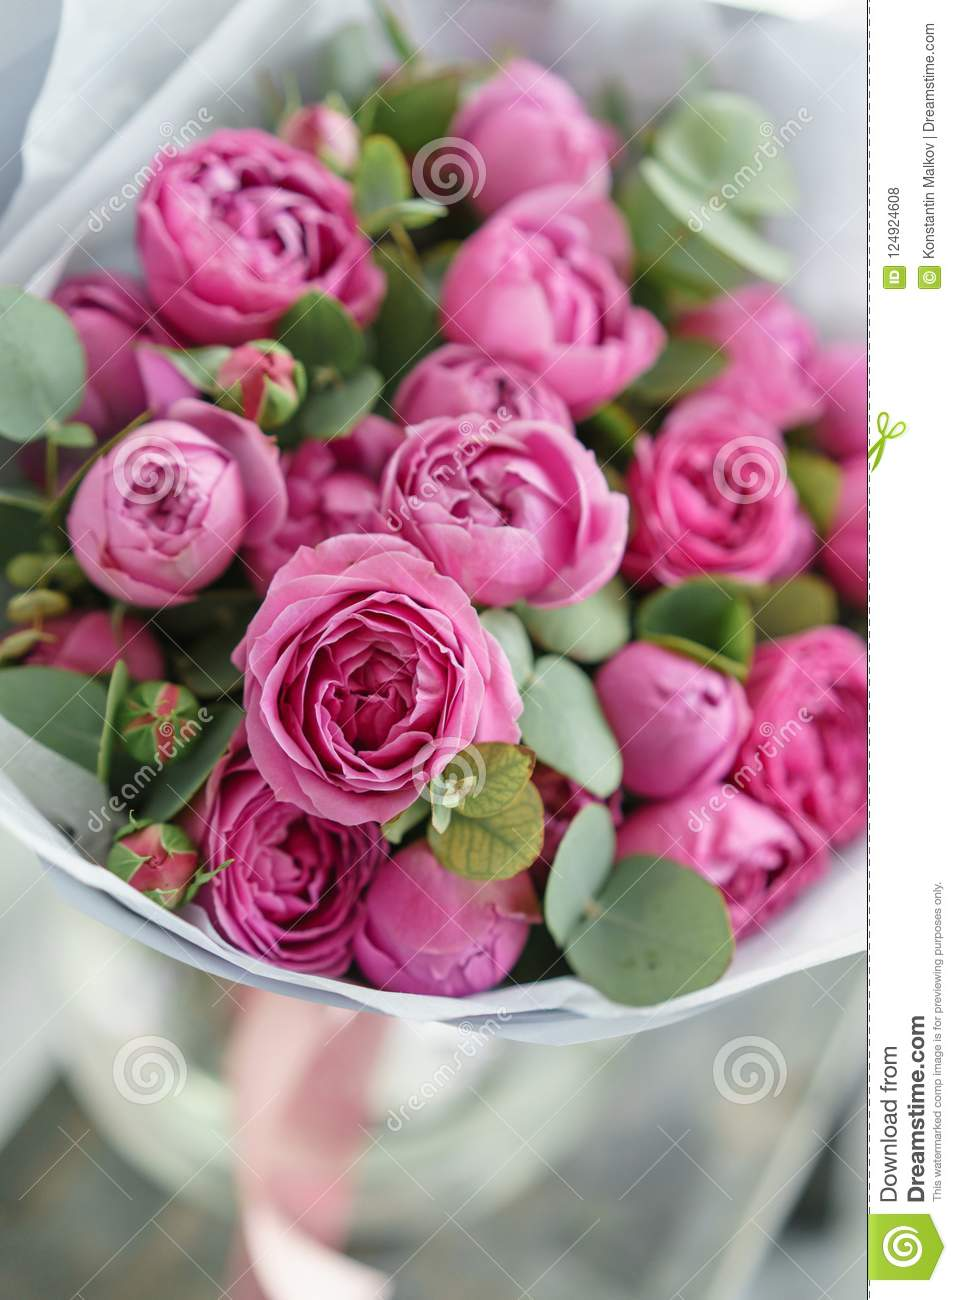 Rose misty bubbles bouquet flowers of pink roses in metal vase bouquet flowers of pink roses in metal vase shabby chic izmirmasajfo